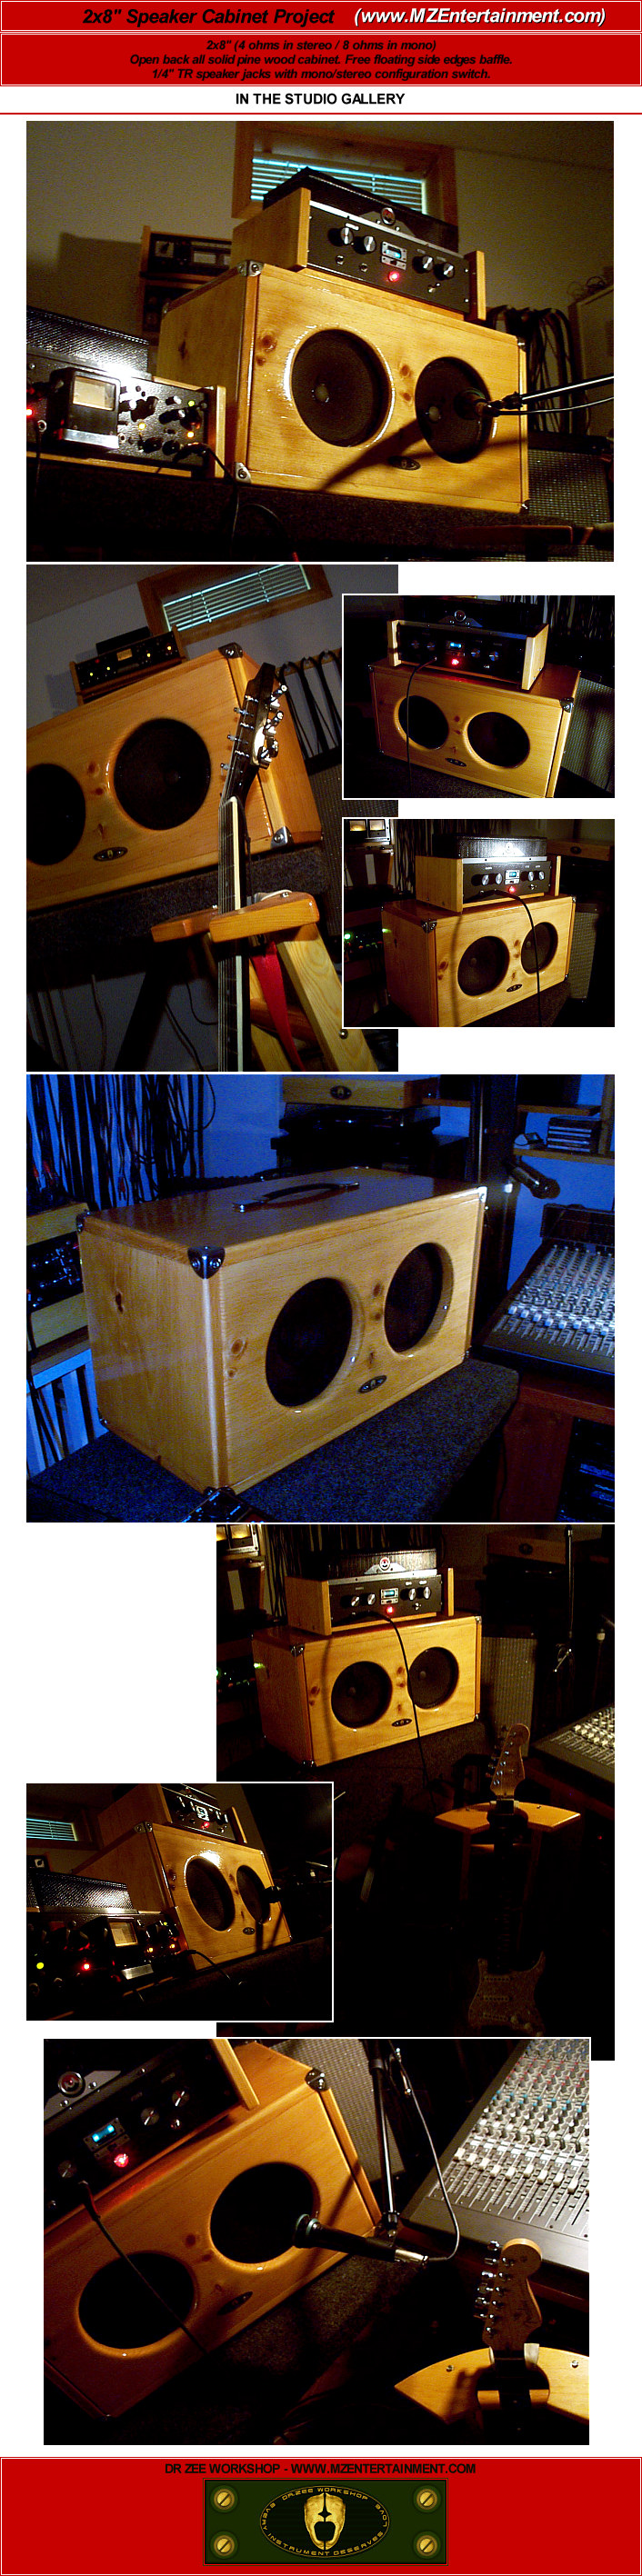 Mze Electroarts Entertainment Mzentertainment Com Dr Zee Workshop Custom Solid Pine Wood 2x8 Quot Guitar Amp Speaker Cabinet With Floating Edges